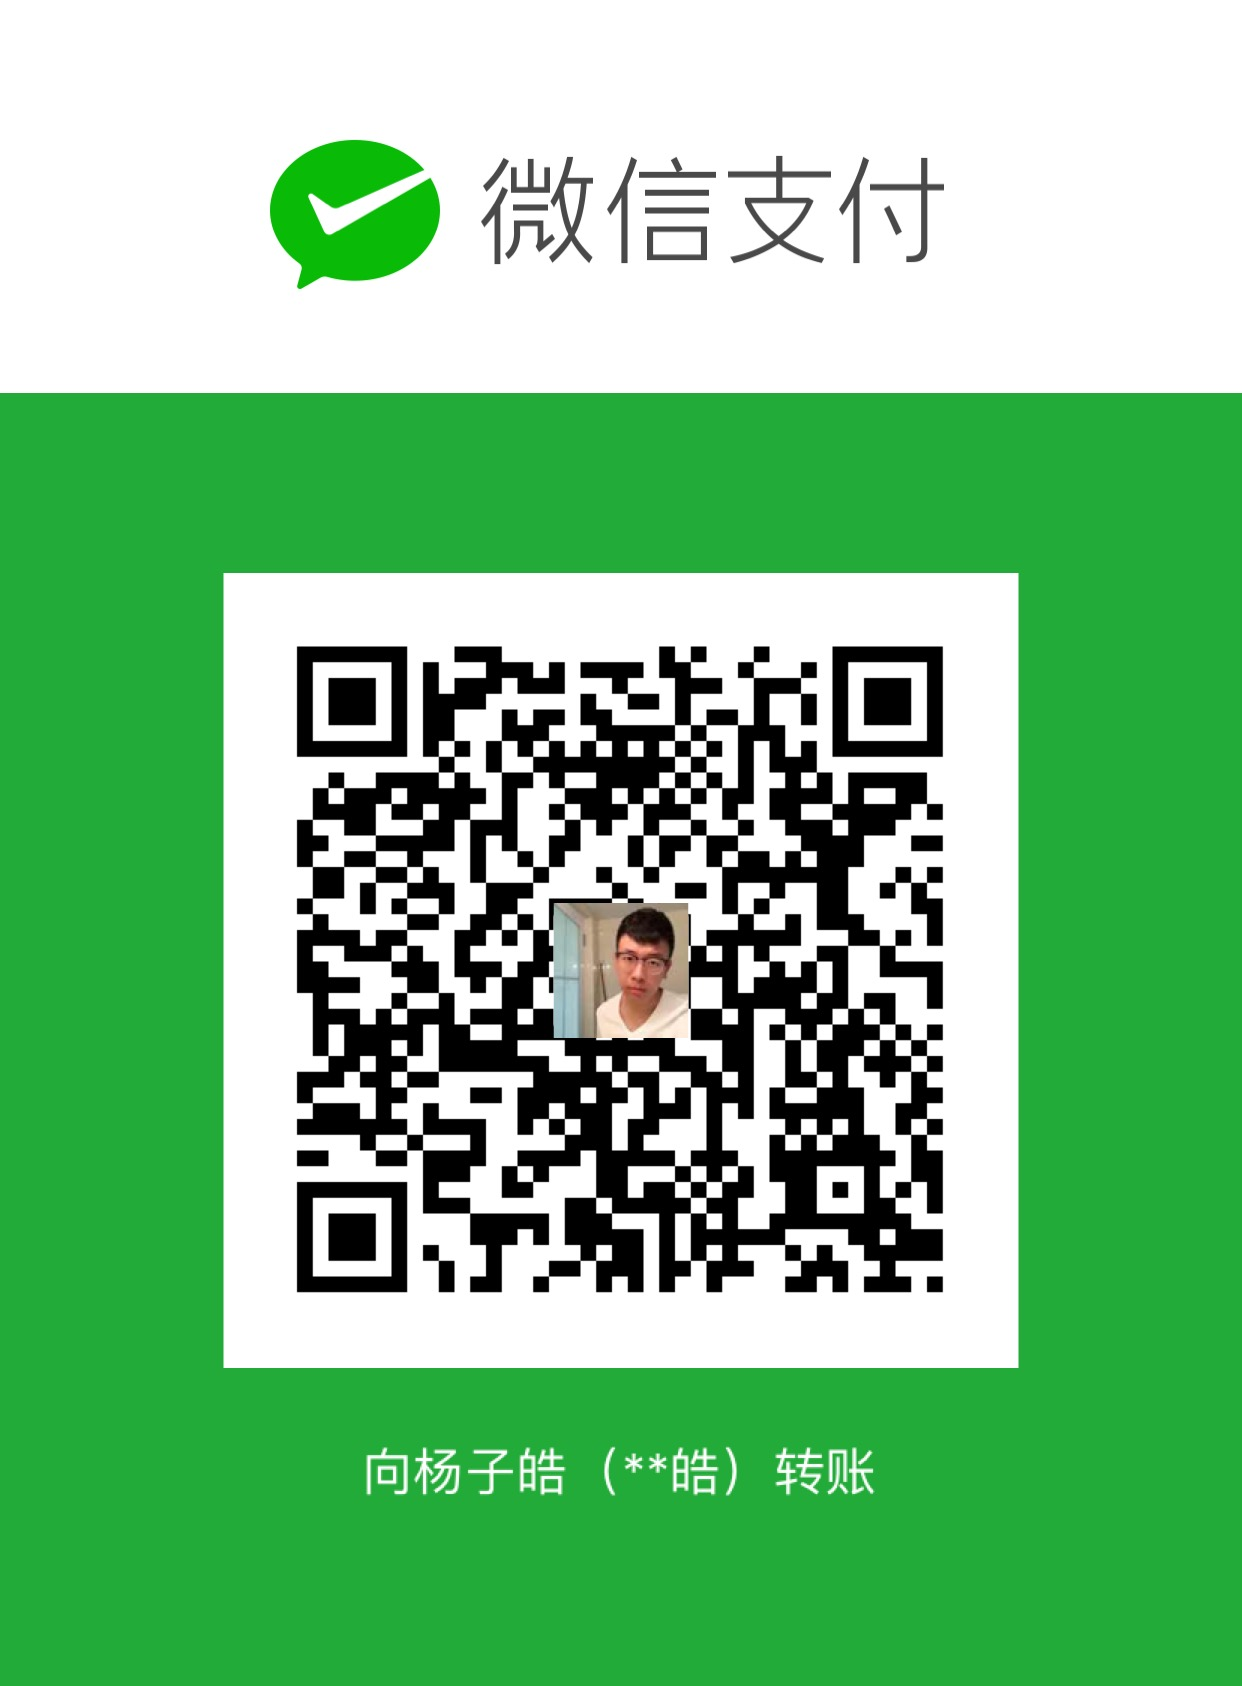 Yang ZiHao WeChat Pay